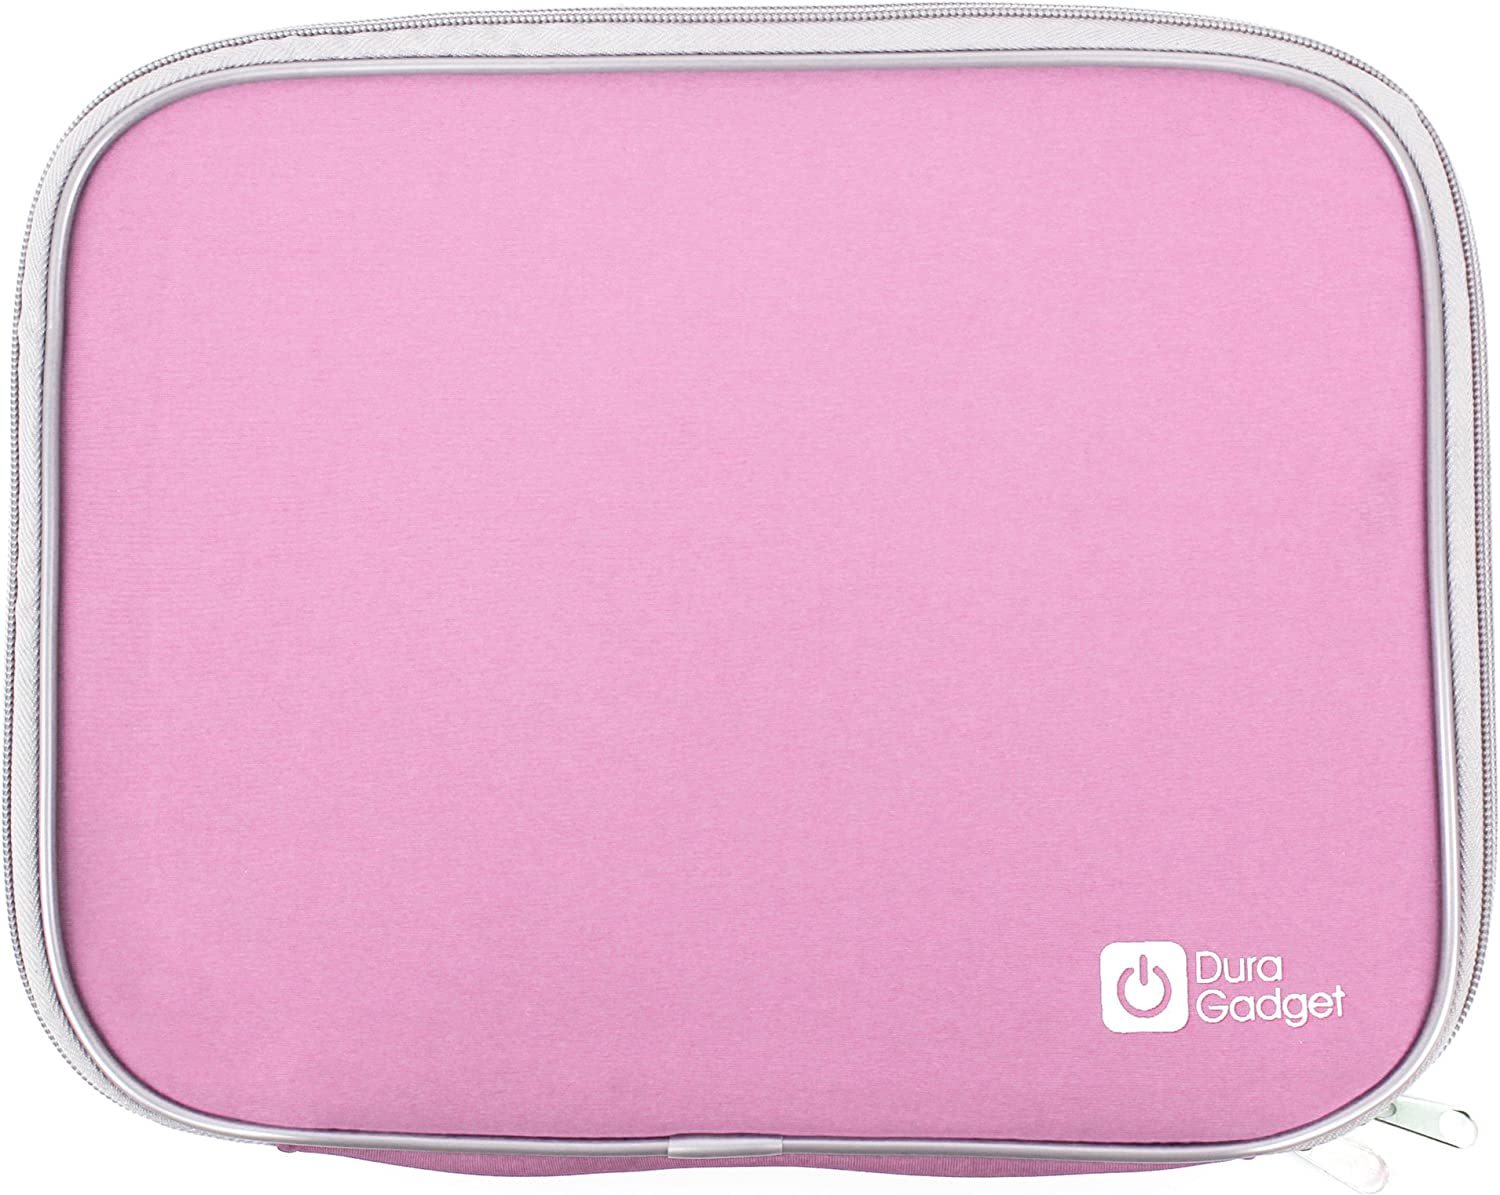 "DURAGADGET Pink ""Travel"" Water Resistant & Shock Absorbent Neoprene Laptop Carry Case With Dual Zips For Acer AC710 C7 Chromebook (Gloss Grey)-(11.6 inch, Intel Celeron 847 1.1GHz, 320GB HDD, Integrated Graphics, Chrome OS) And Acer Aspire V5-171-323a4G50ass 11,6"" Windows 8"